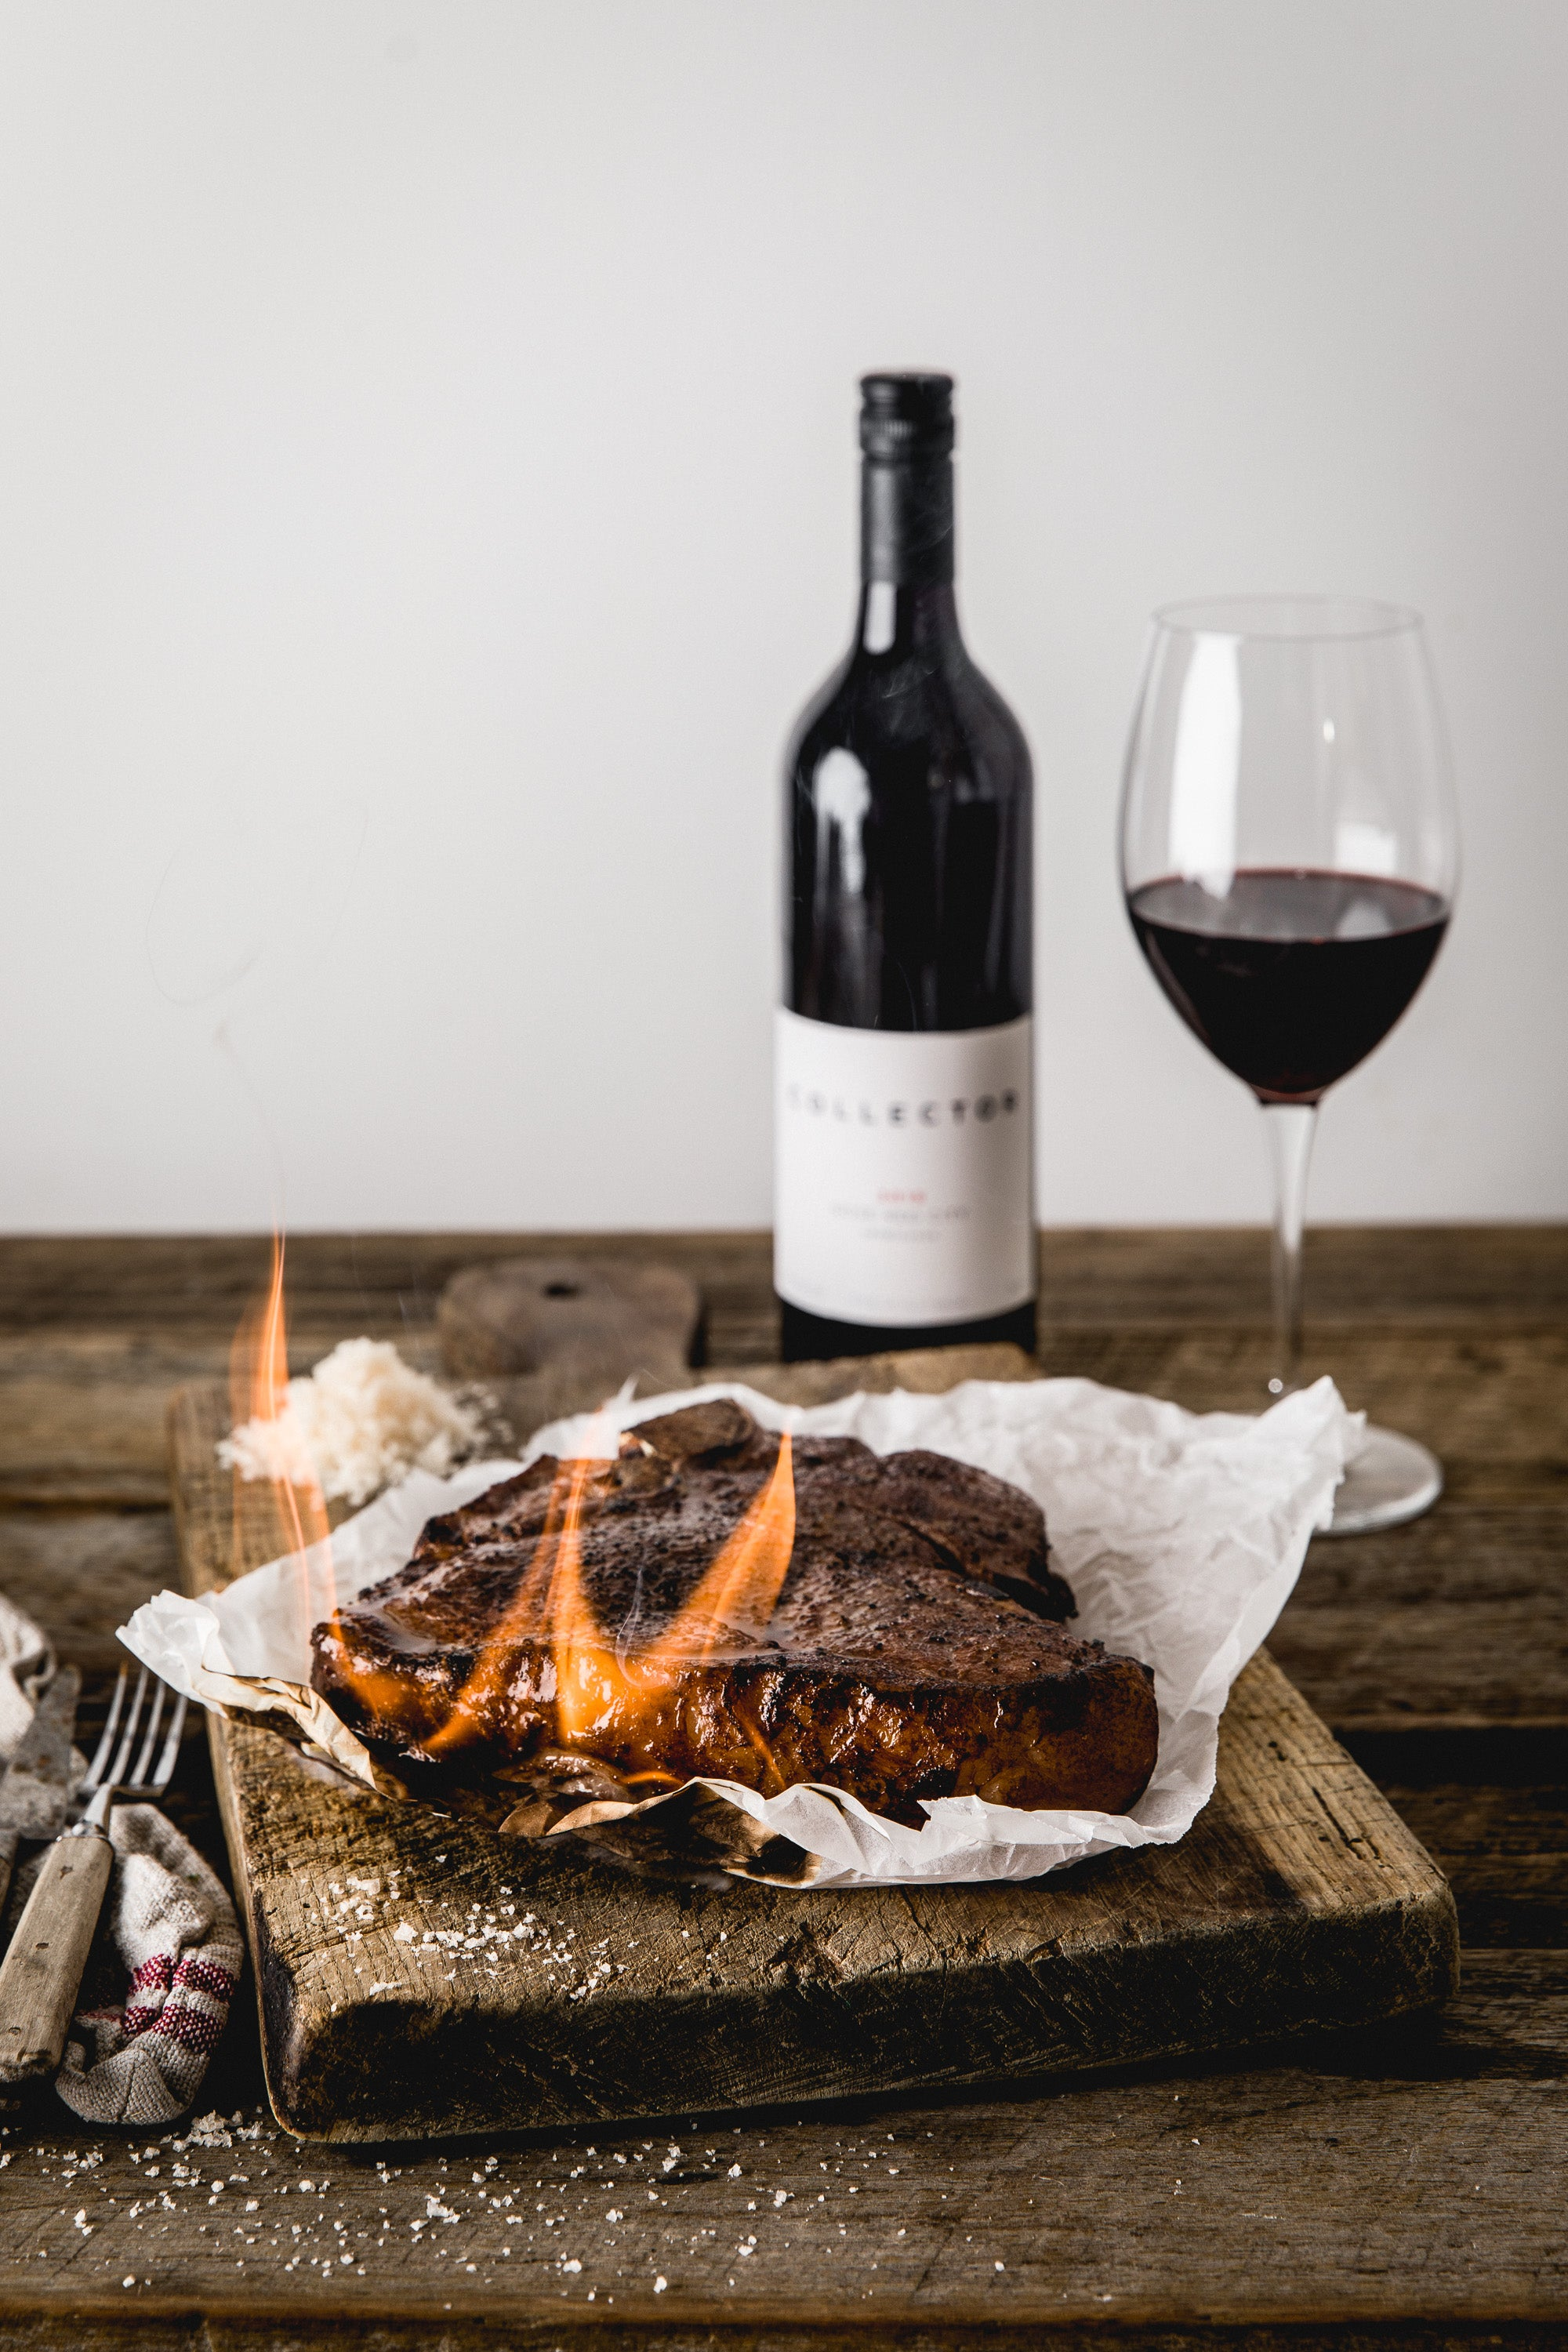 A T-bone steak, grilled and with flames still licking its sides, rests on a rustic wooden board. A bottle and glass of Collector Wines Rose Red City Sangiovese sits in the background.